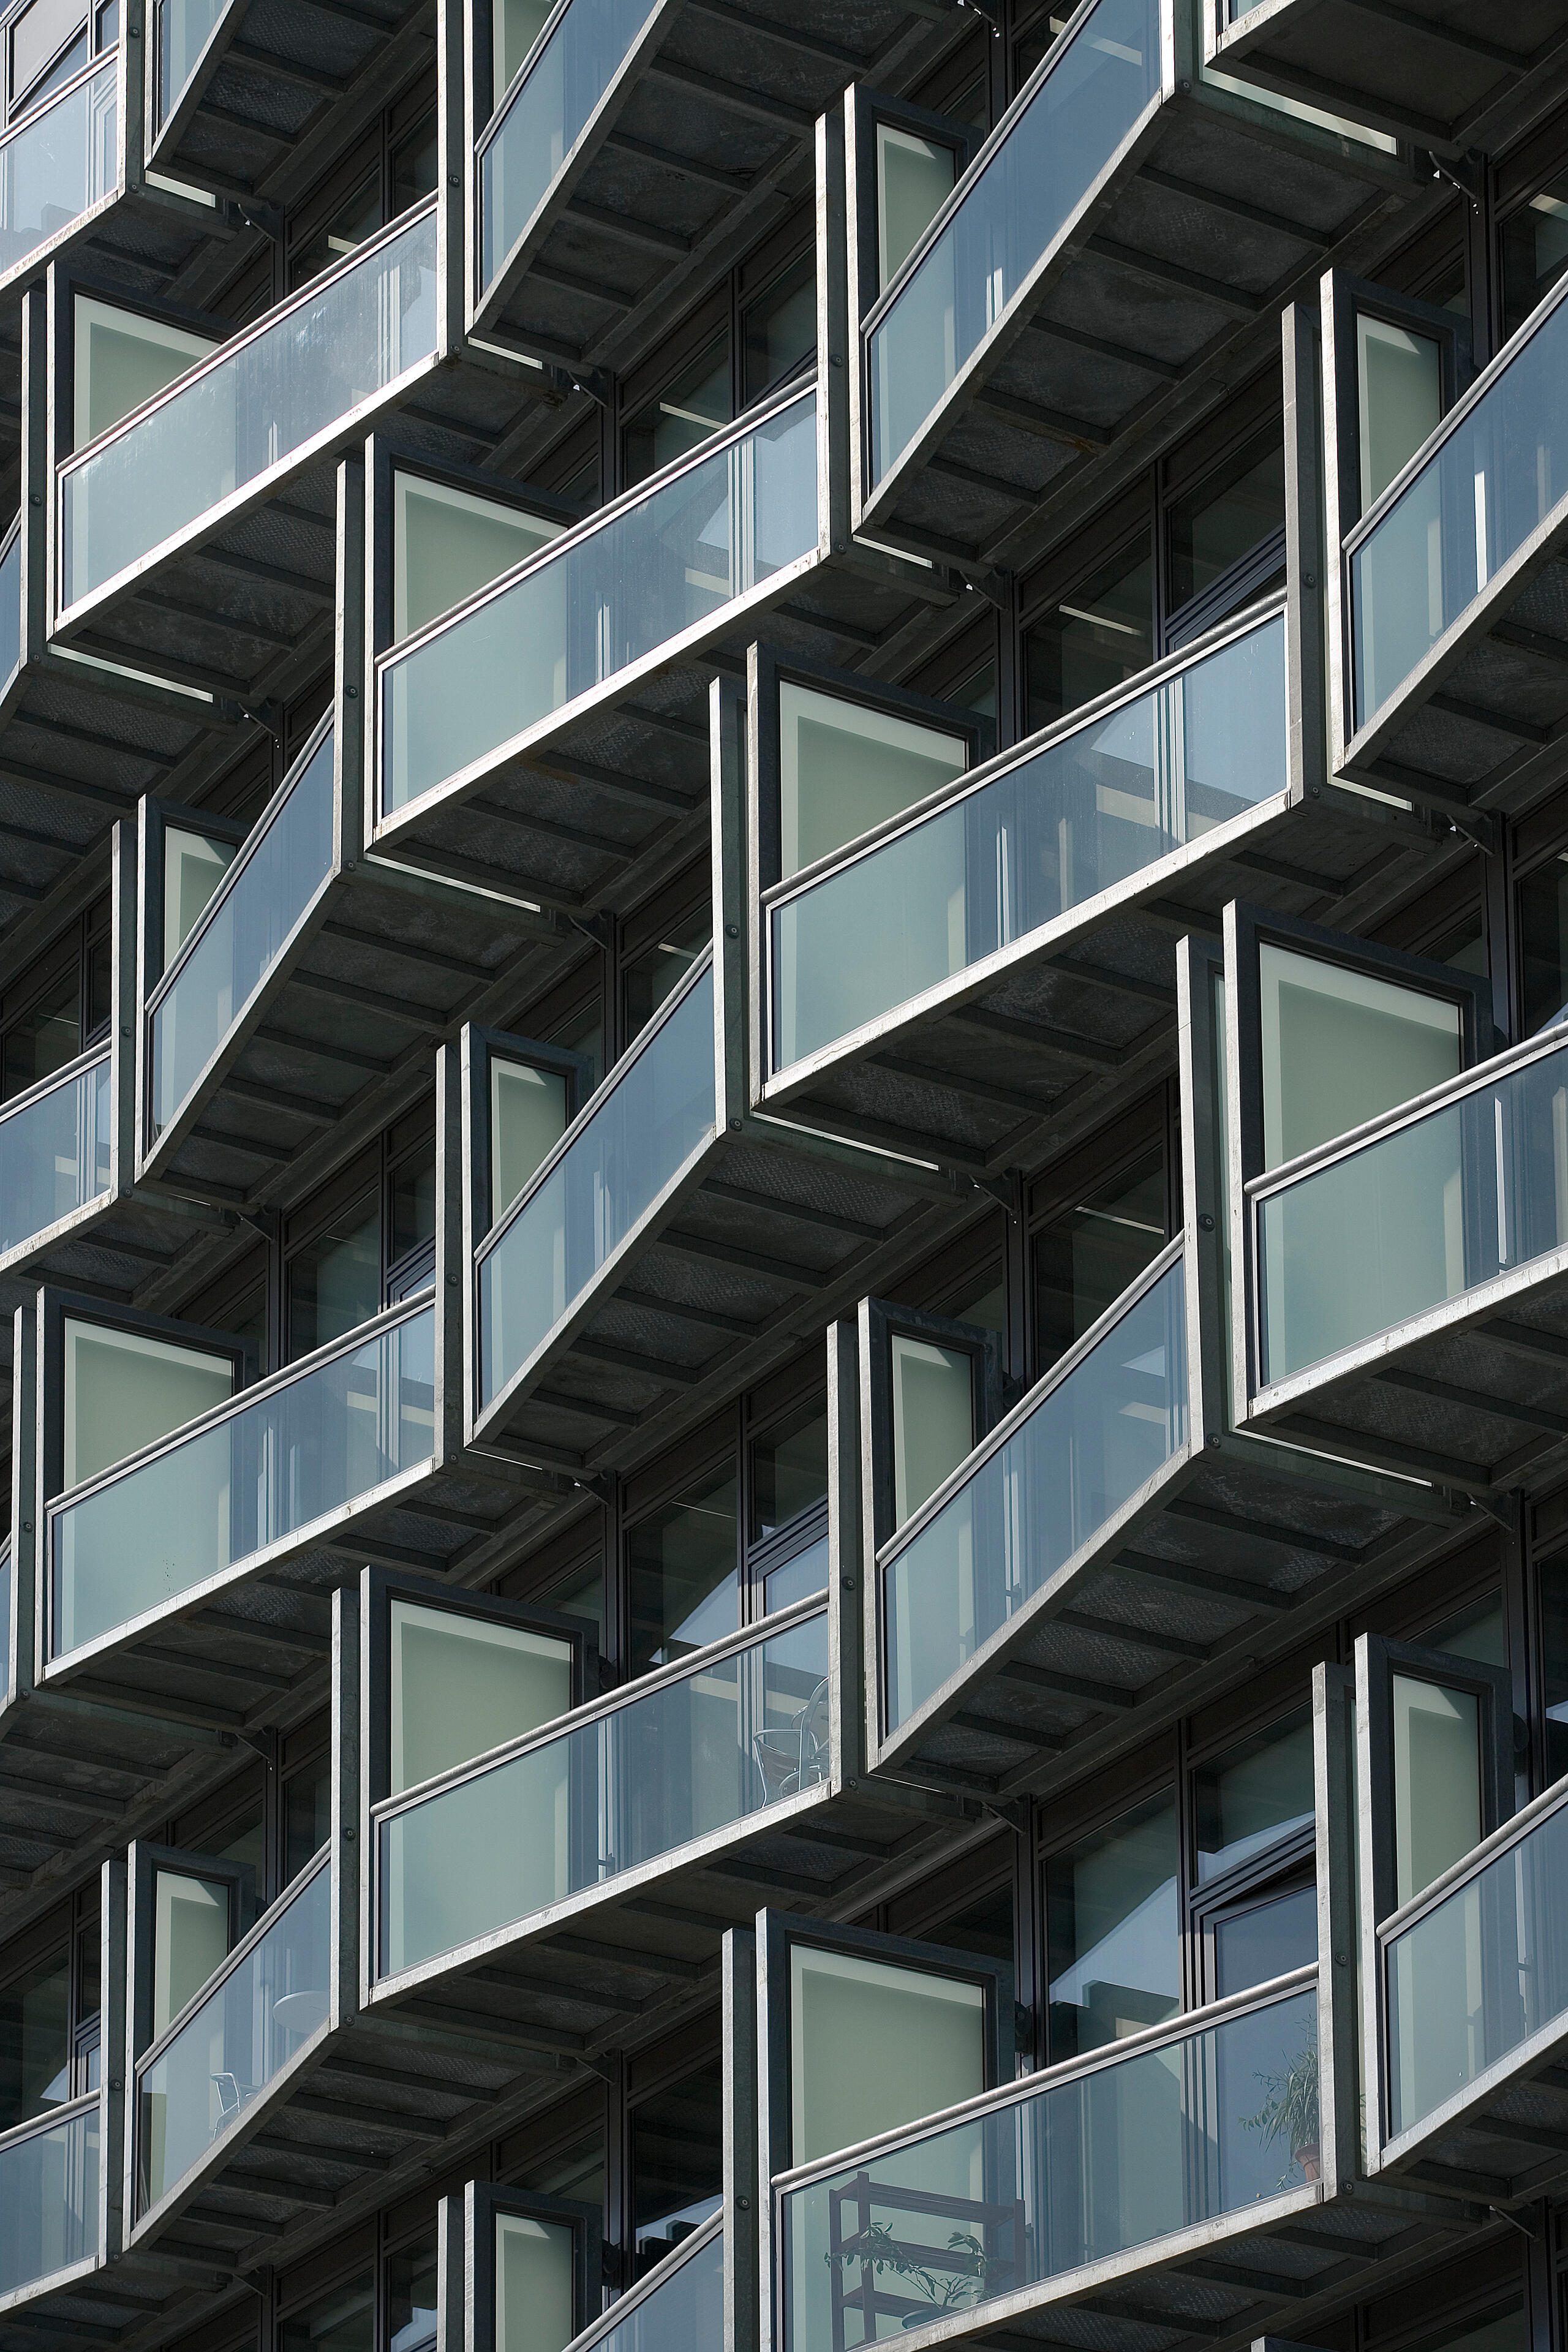 close up of balcony pattern of Abito Apartments showing how they appear to zig zag